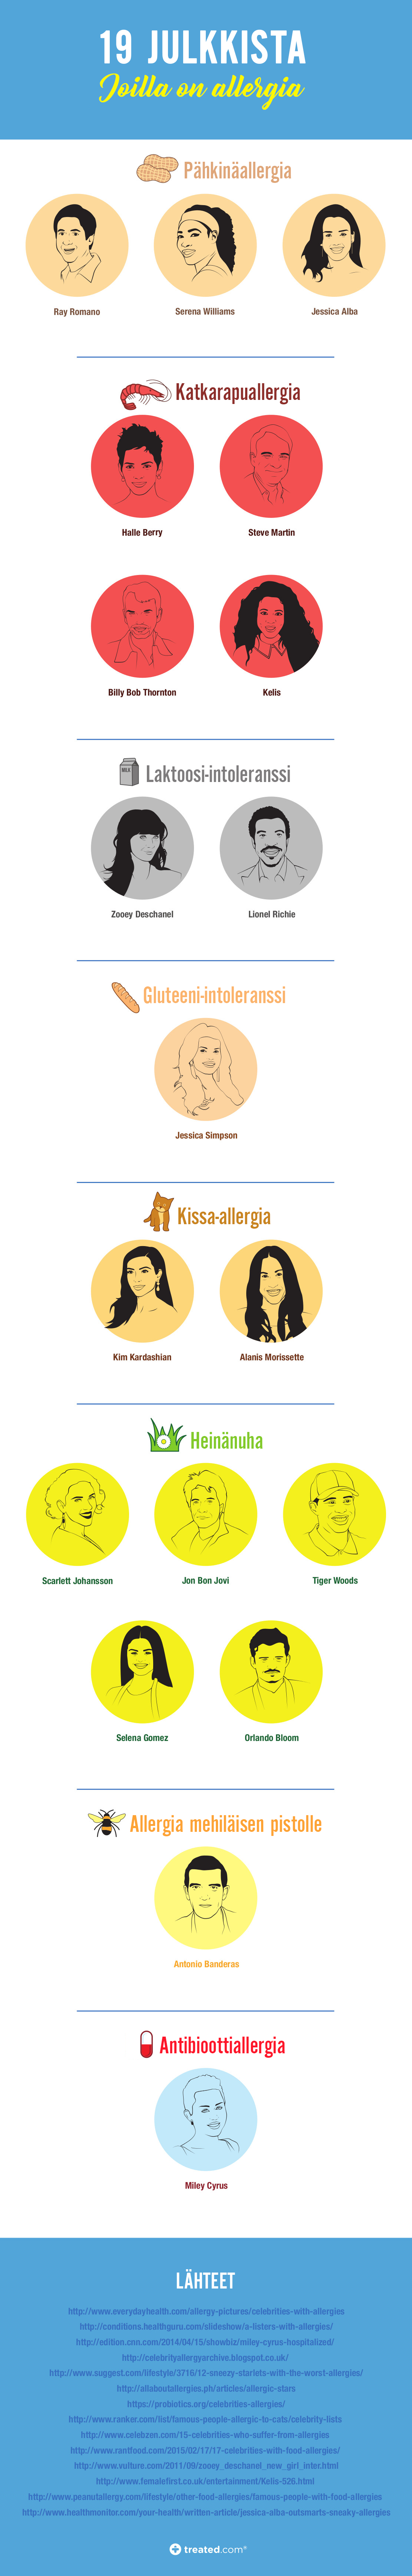 Treated Celebrity Allergy Infographic